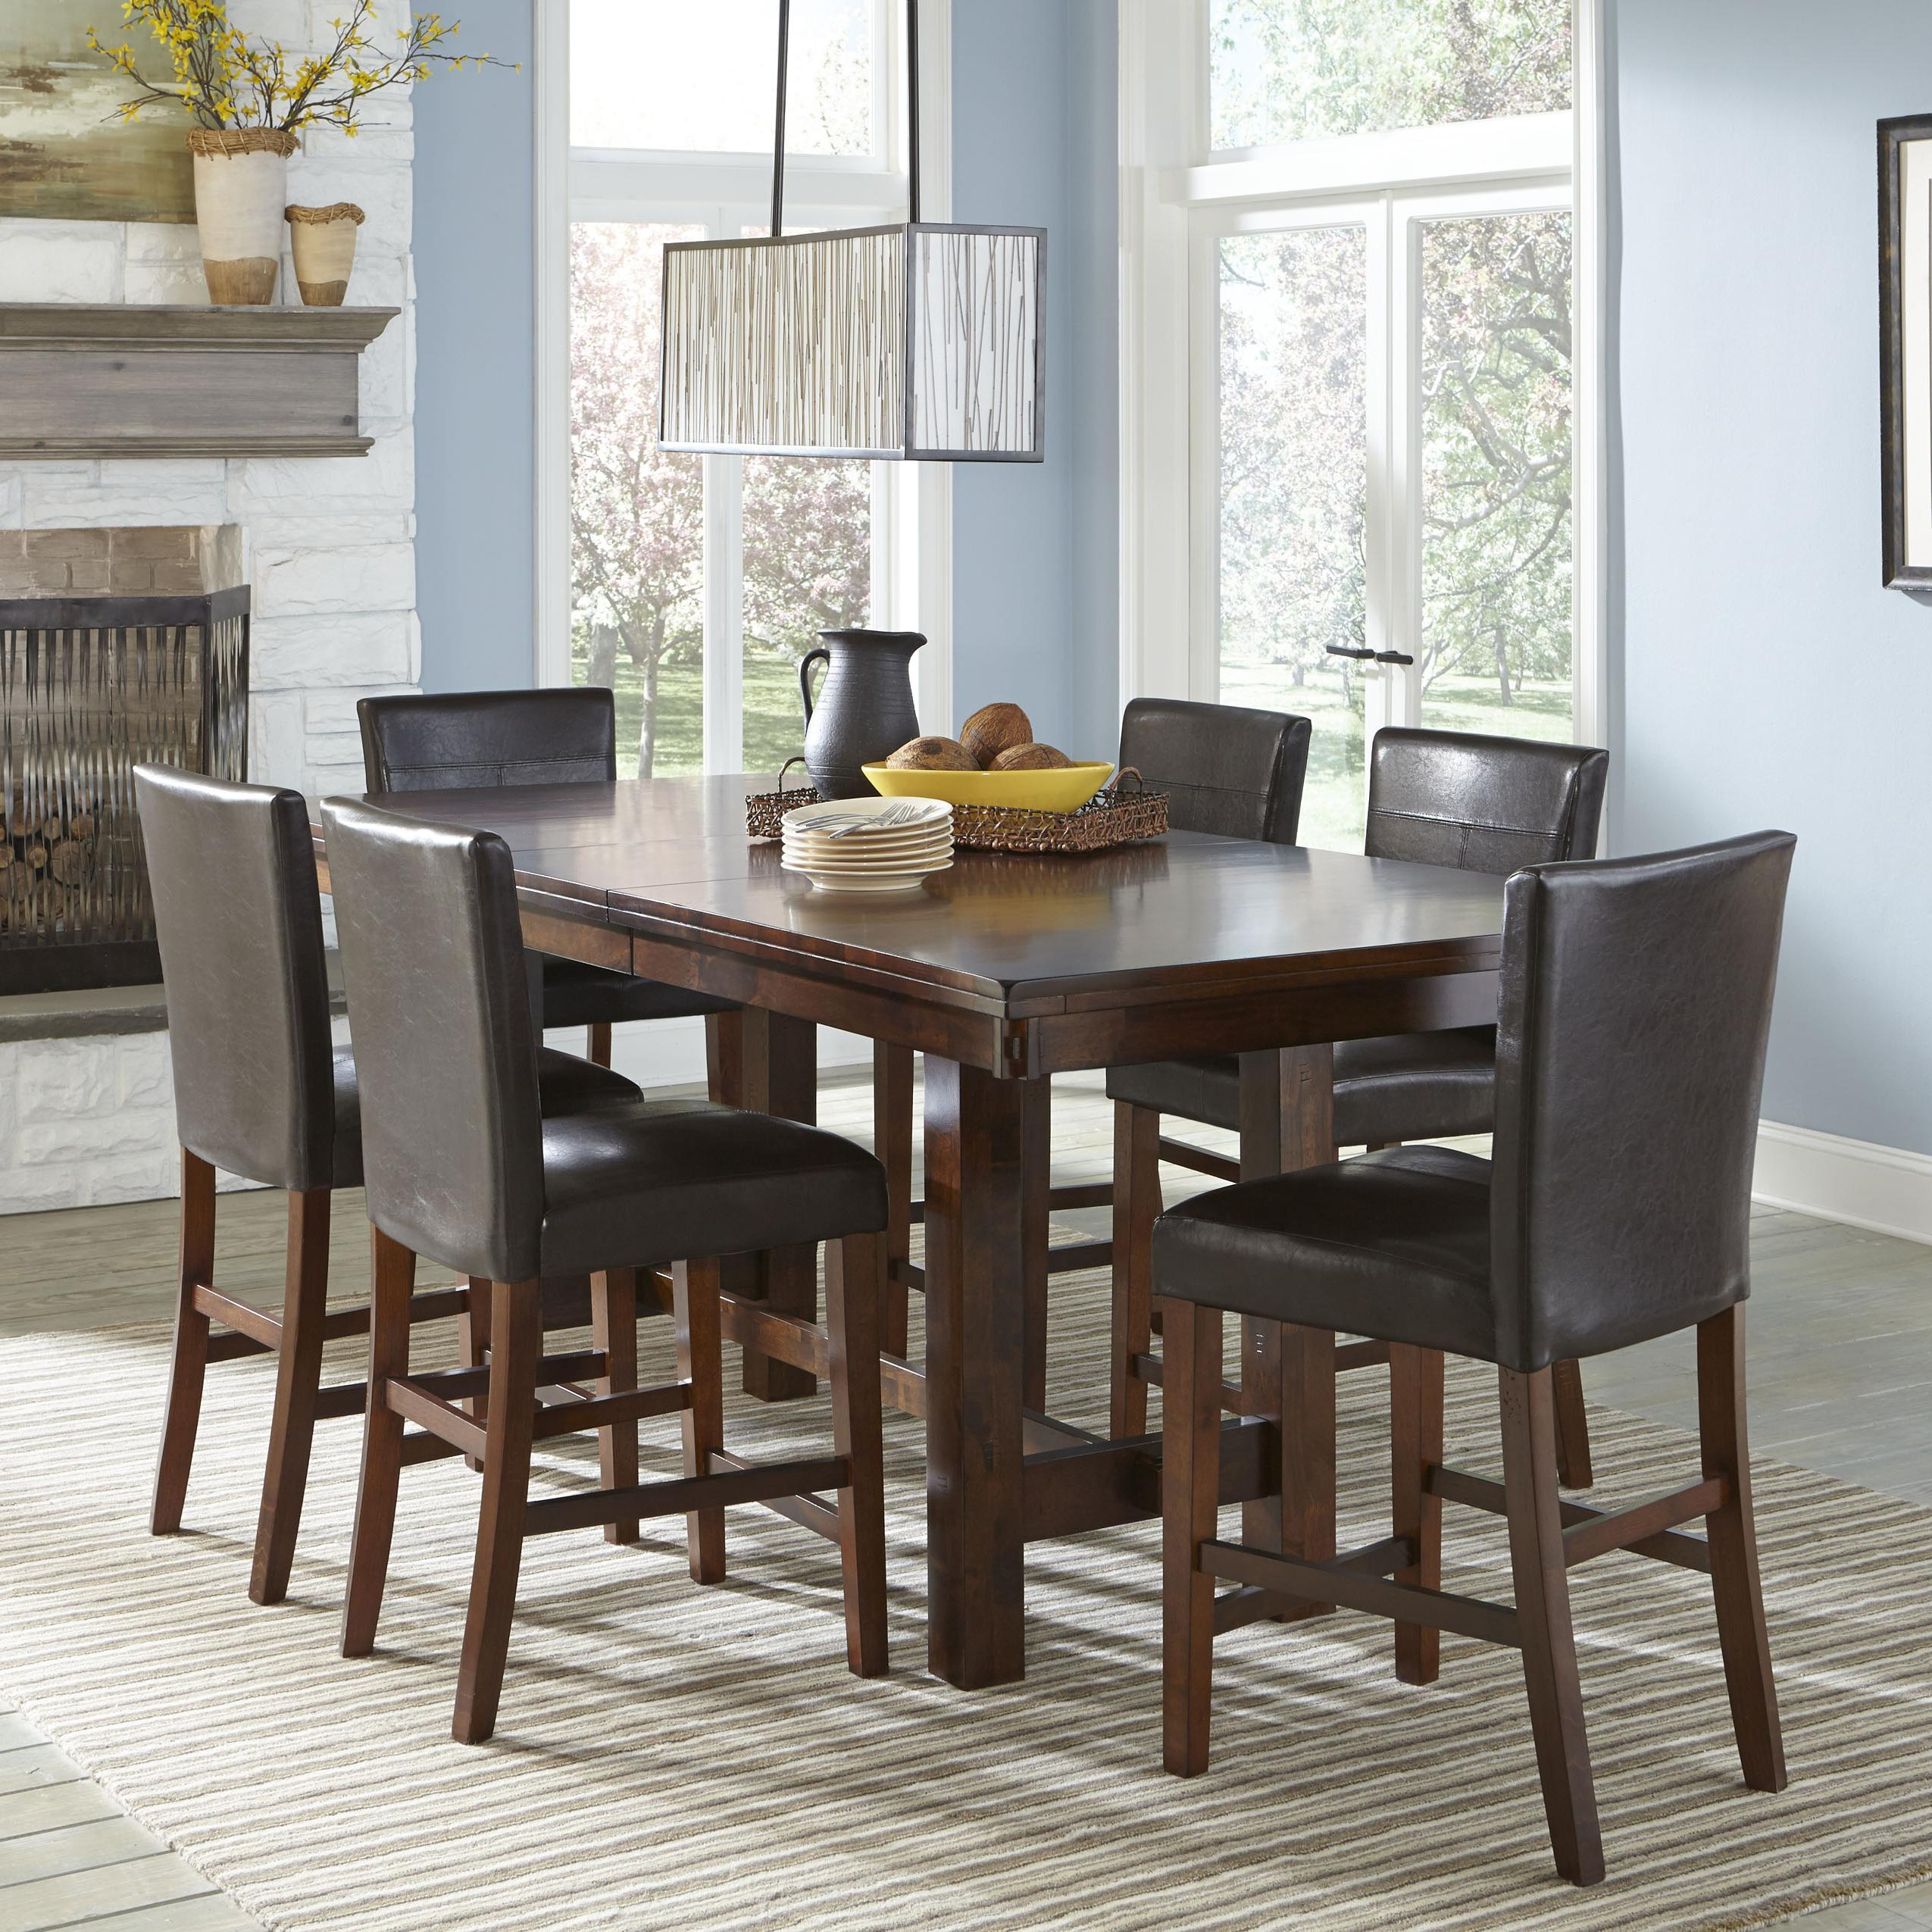 Kona Counter Height Dining Set by Intercon at Rife's Home Furniture